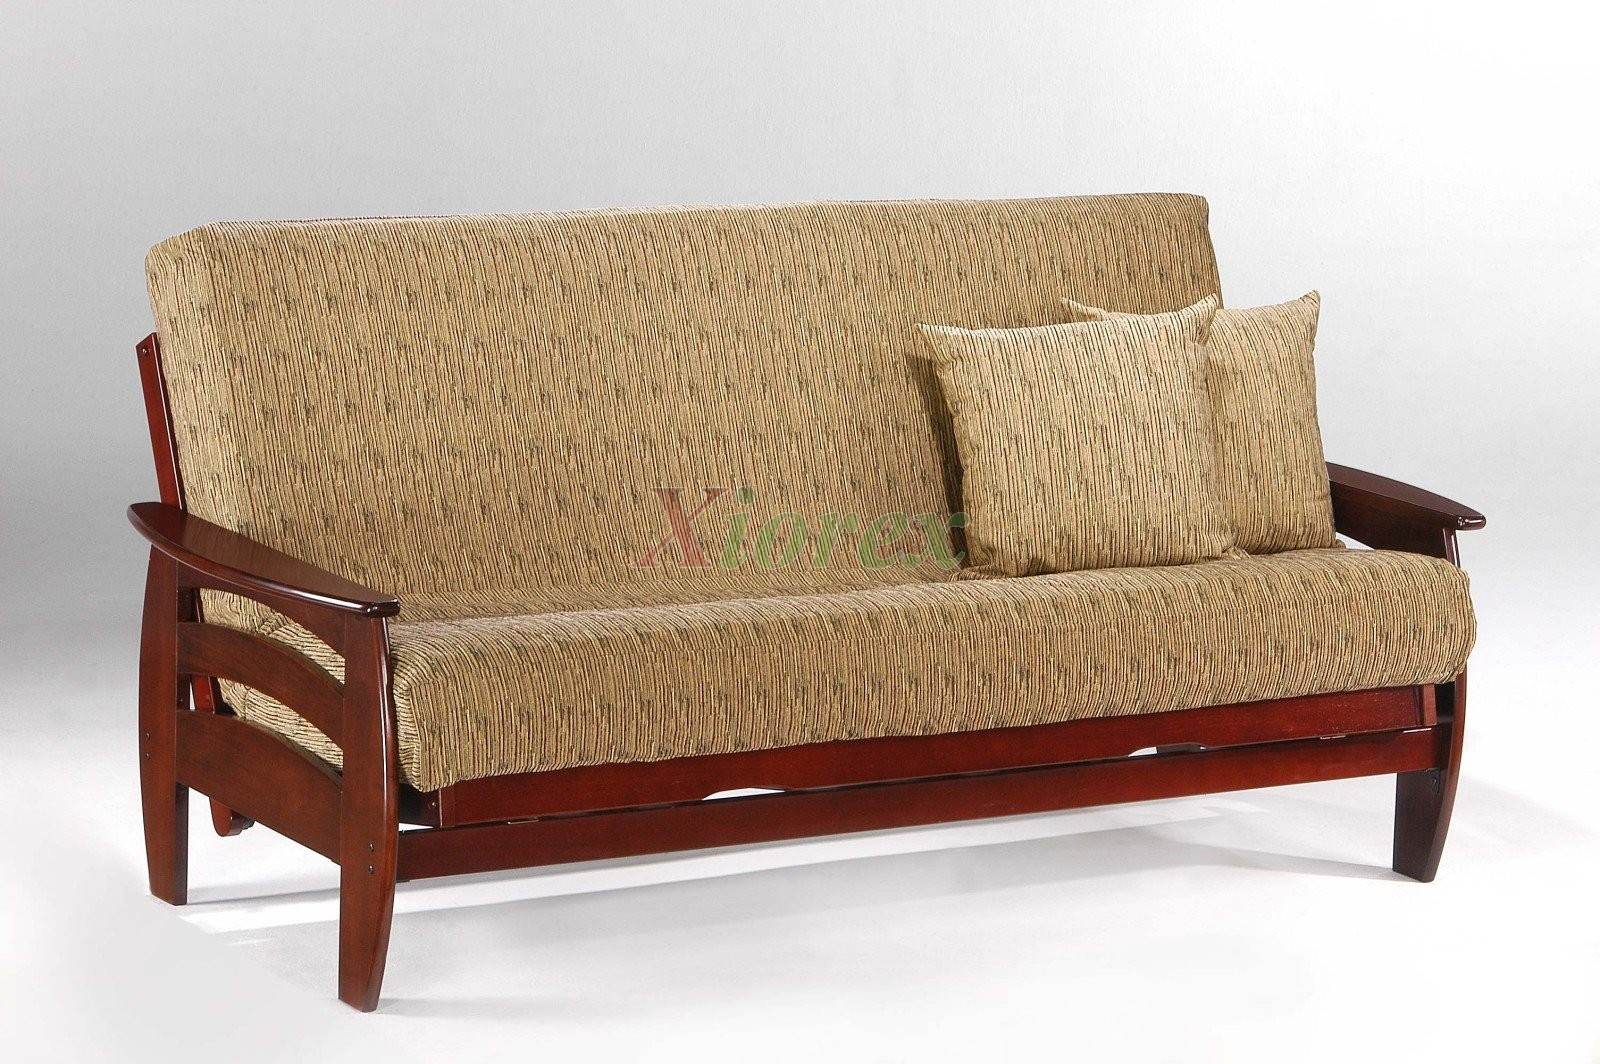 Couch Futon Night And Day Corona Futon Couch Frame Xiorex